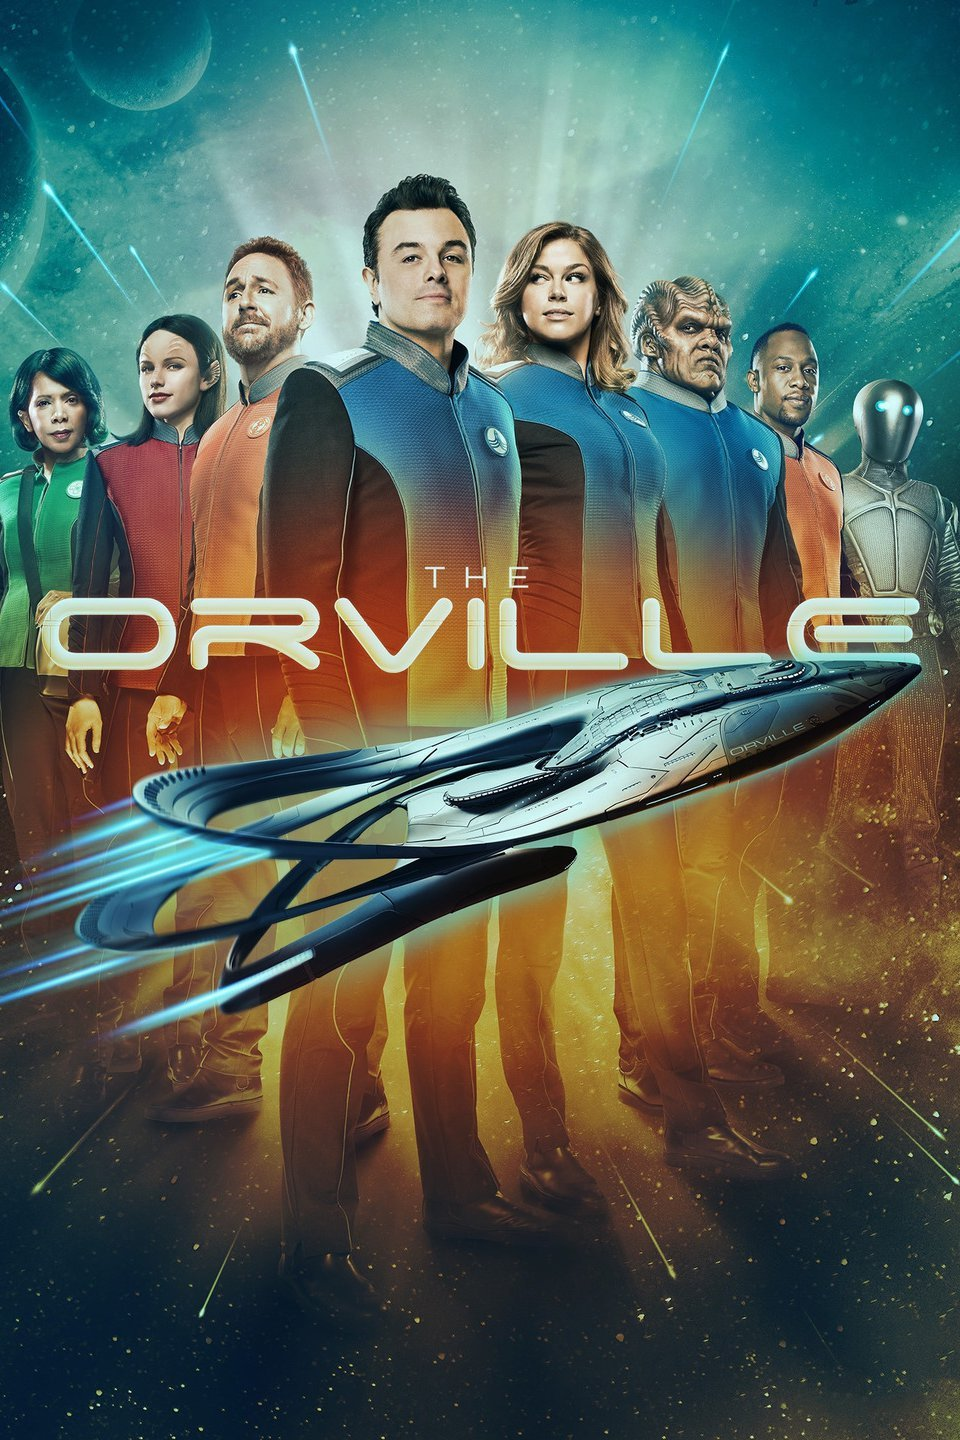 The Orville Season 1 Episode 12 Download HDTV 480p 720p